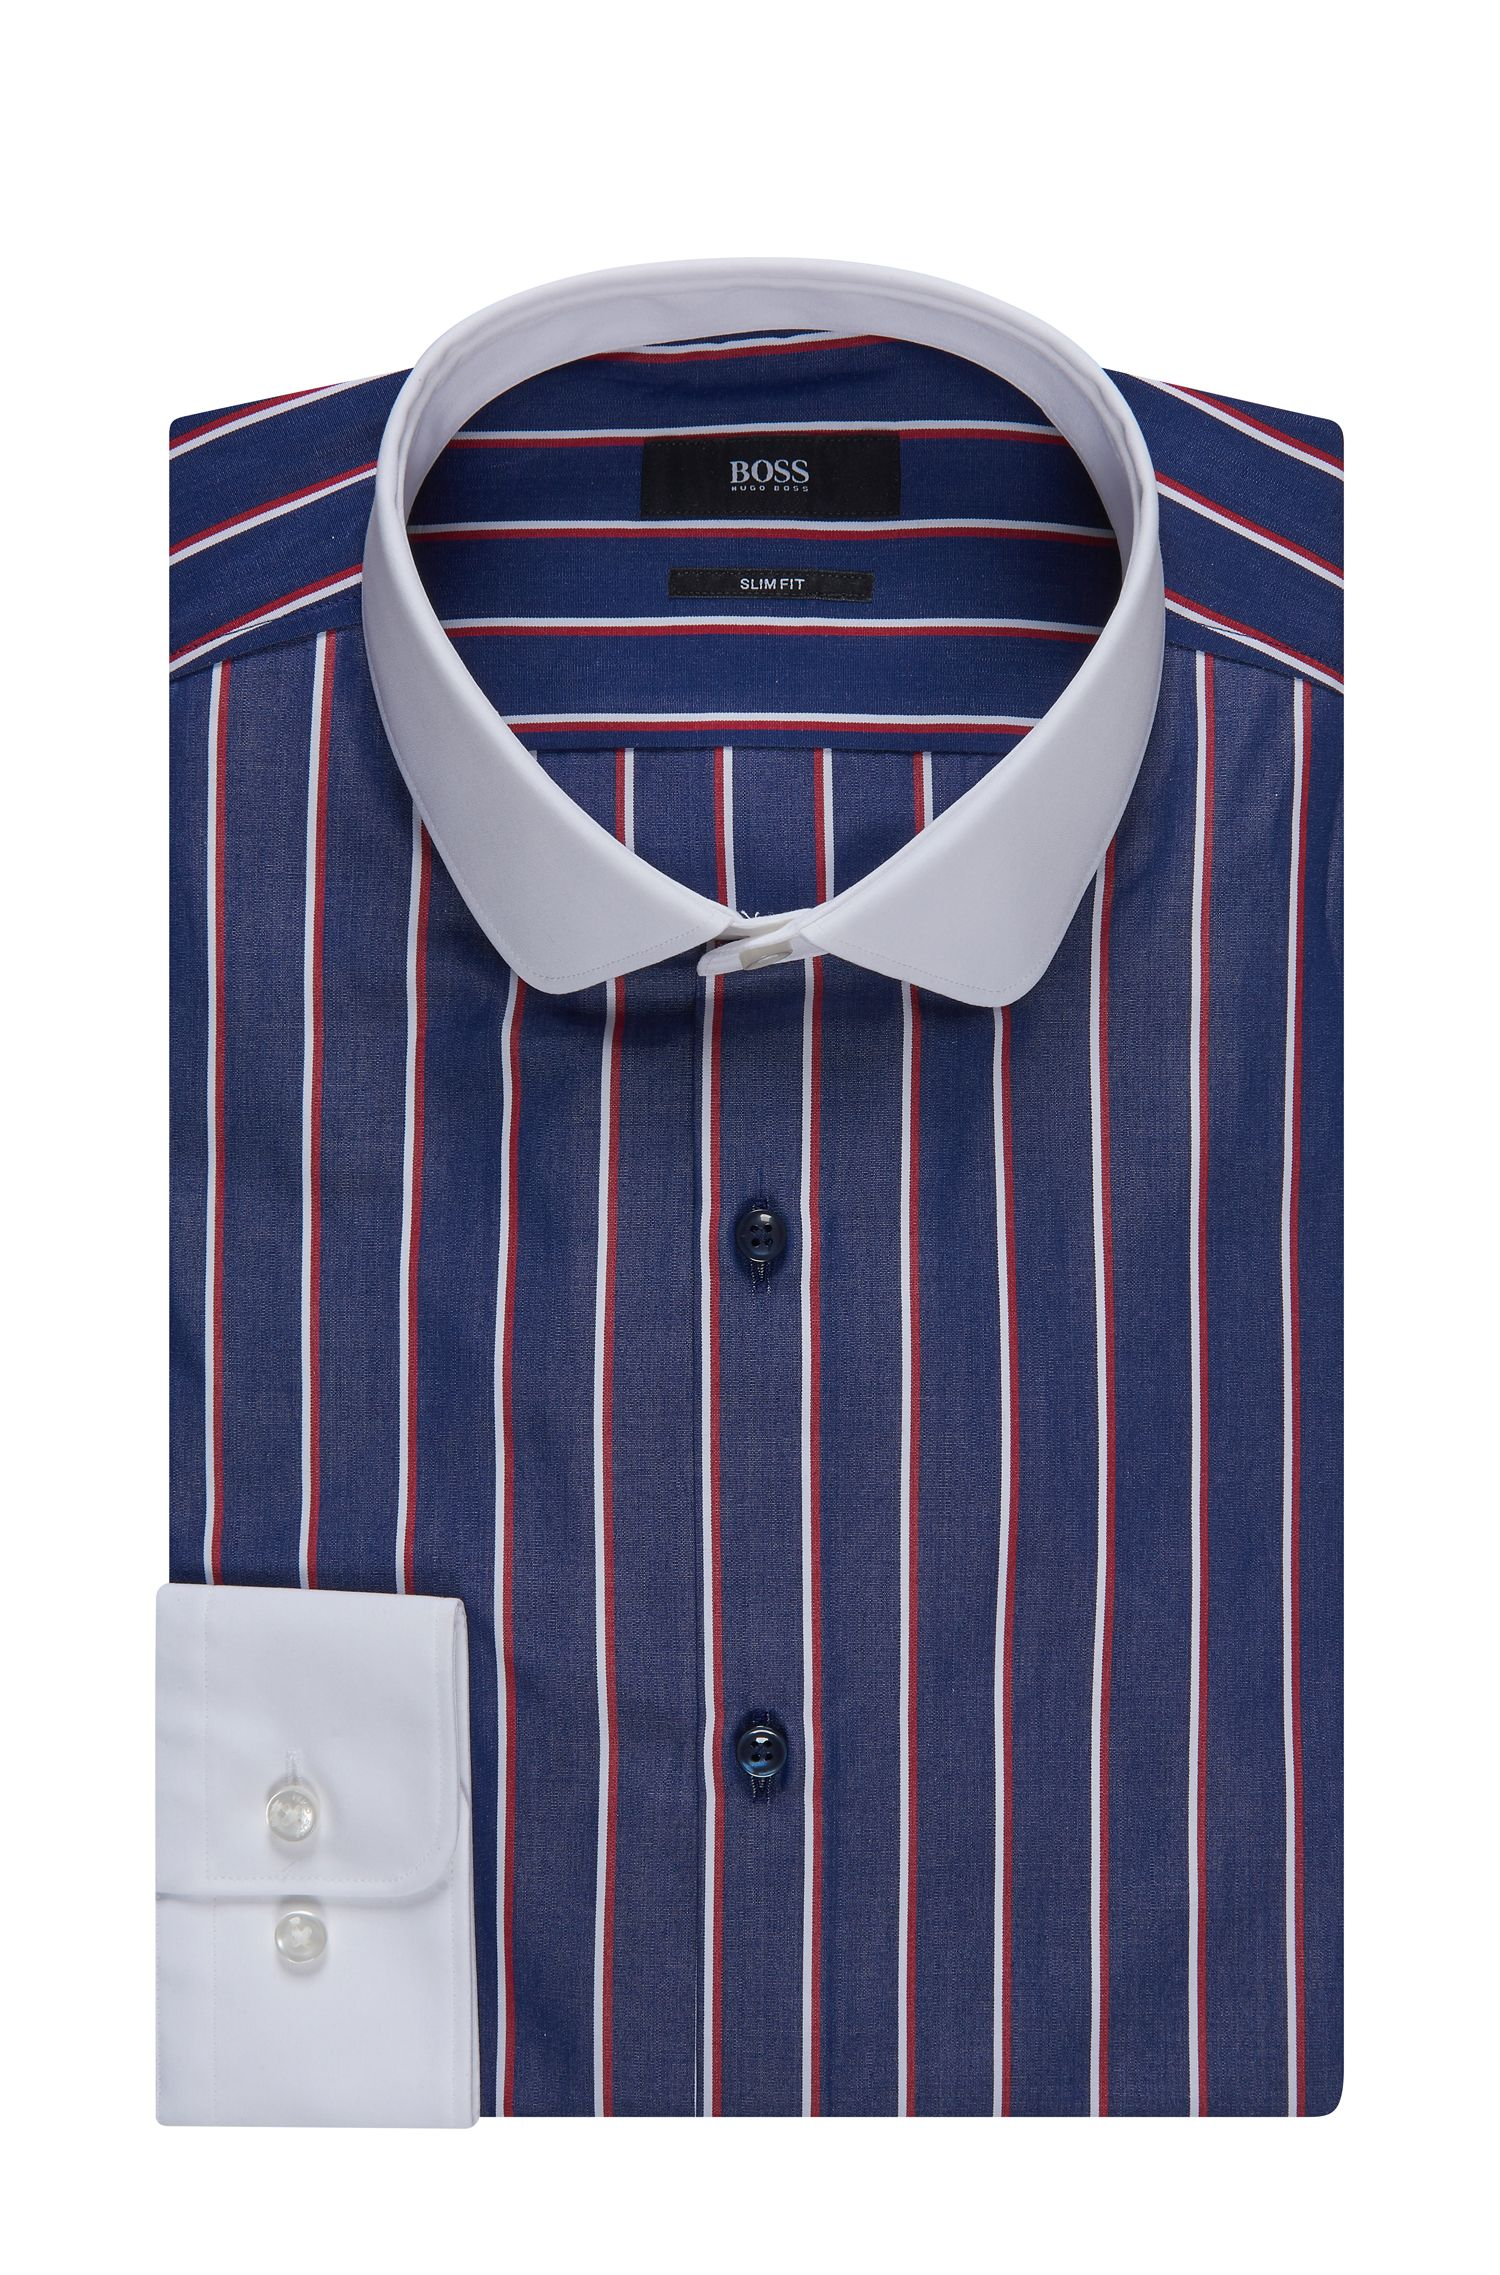 Contrast Easy Iron Cotton Dress Shirt, Slim Fit | Joshy